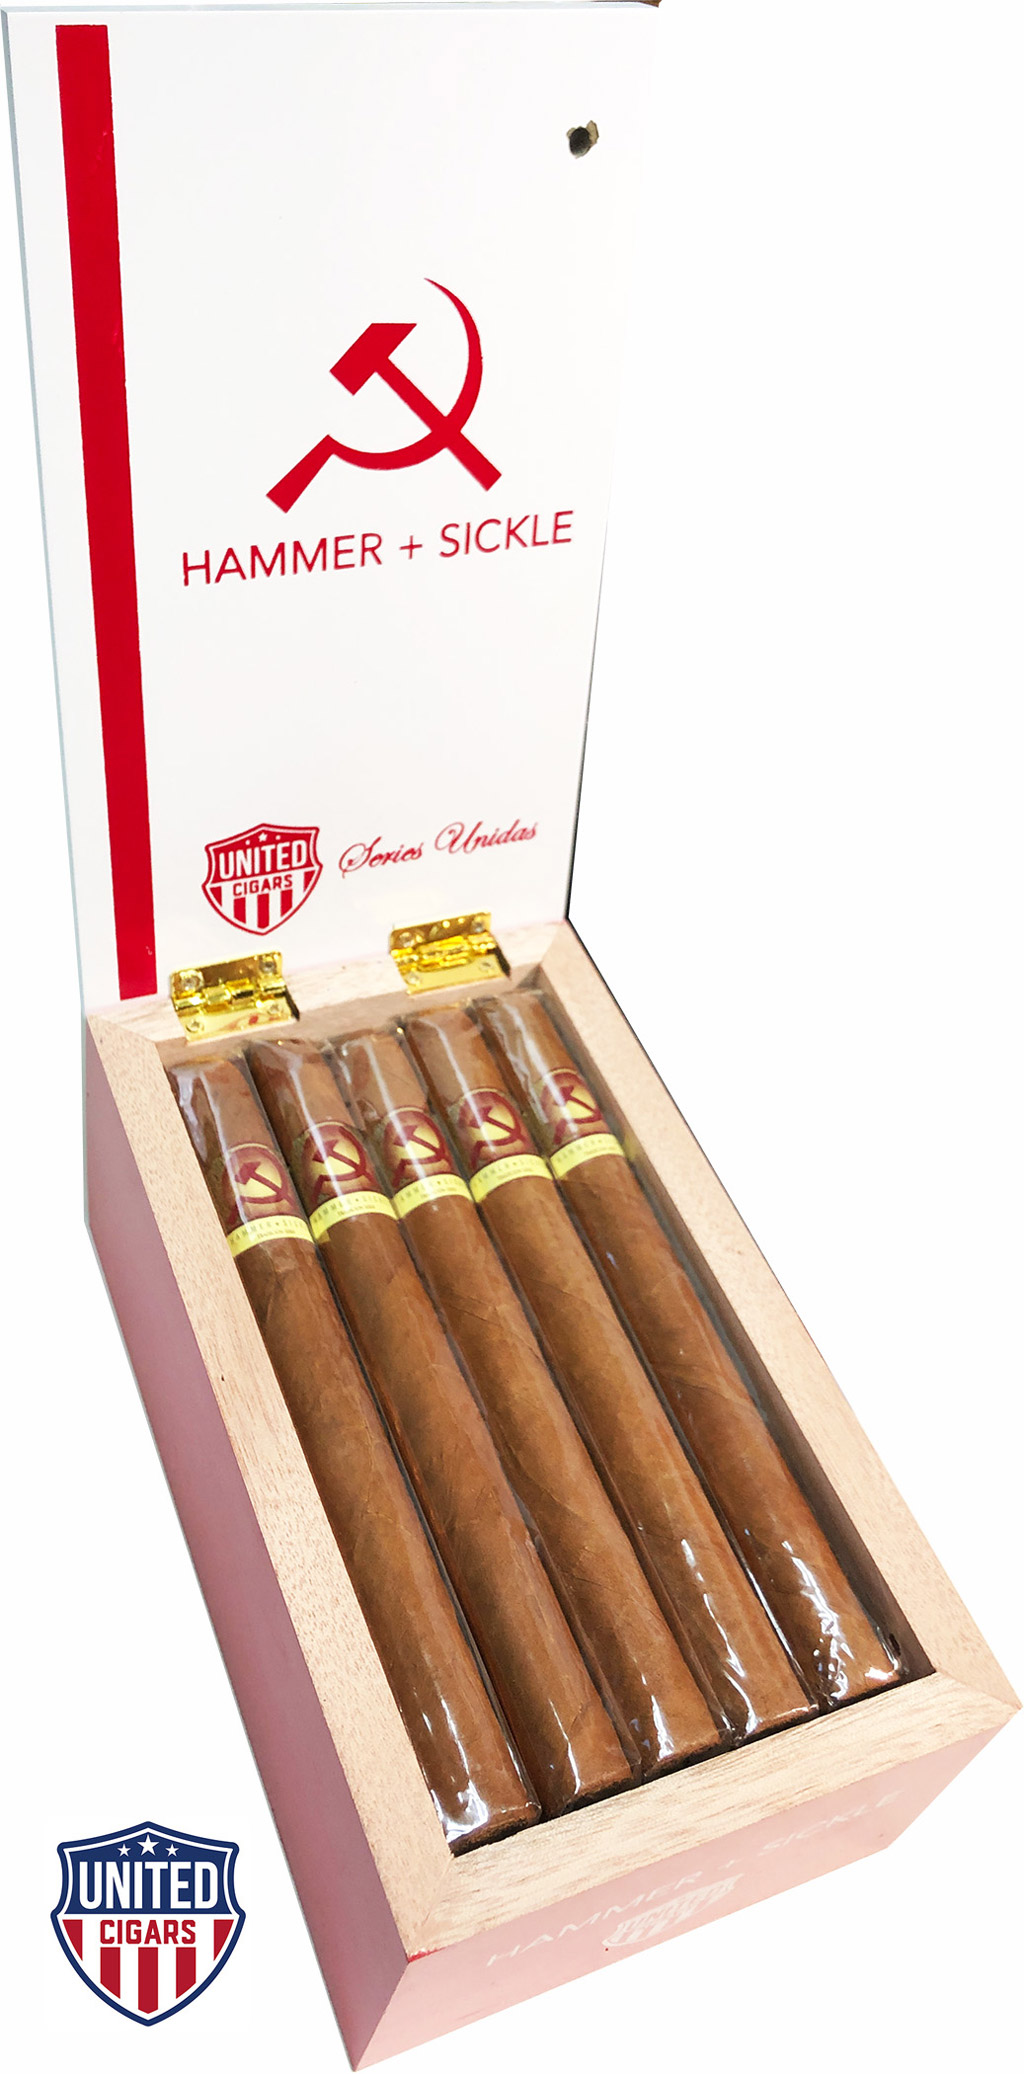 United Cigars Hammer + Sickle Series Unidas cigar box open